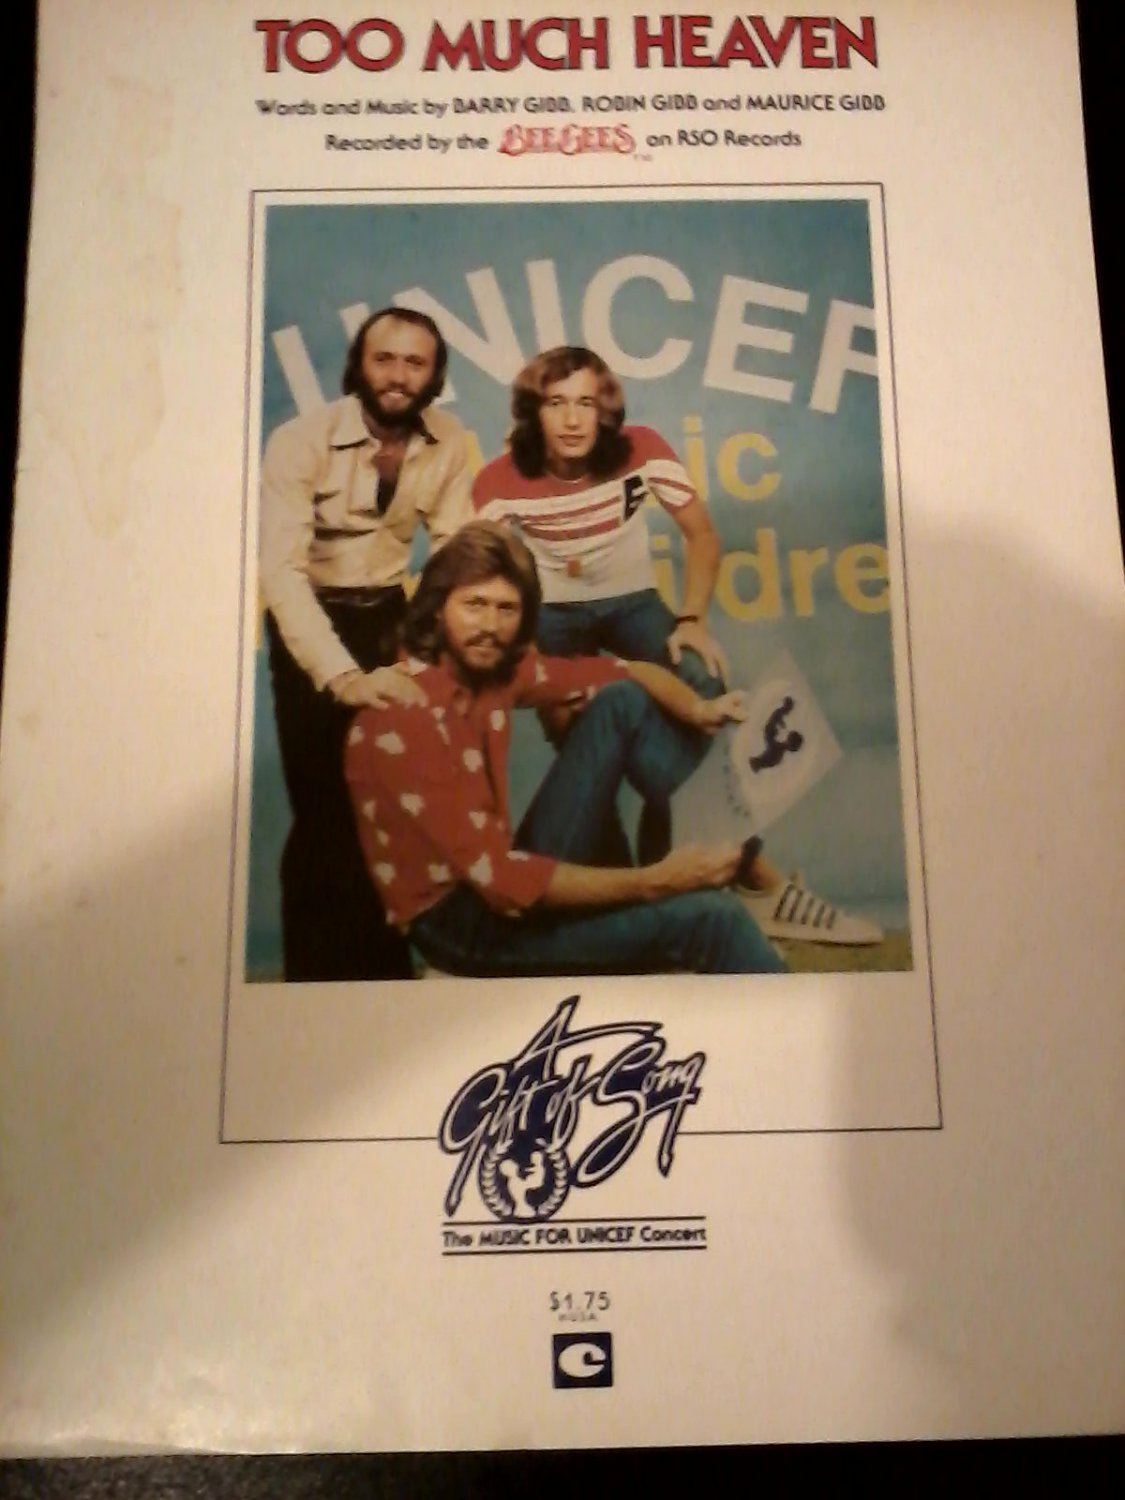 Gibb) Bee Gees Too Much Heaven VG+ '79 UNICEF PS Sheet Music Folder